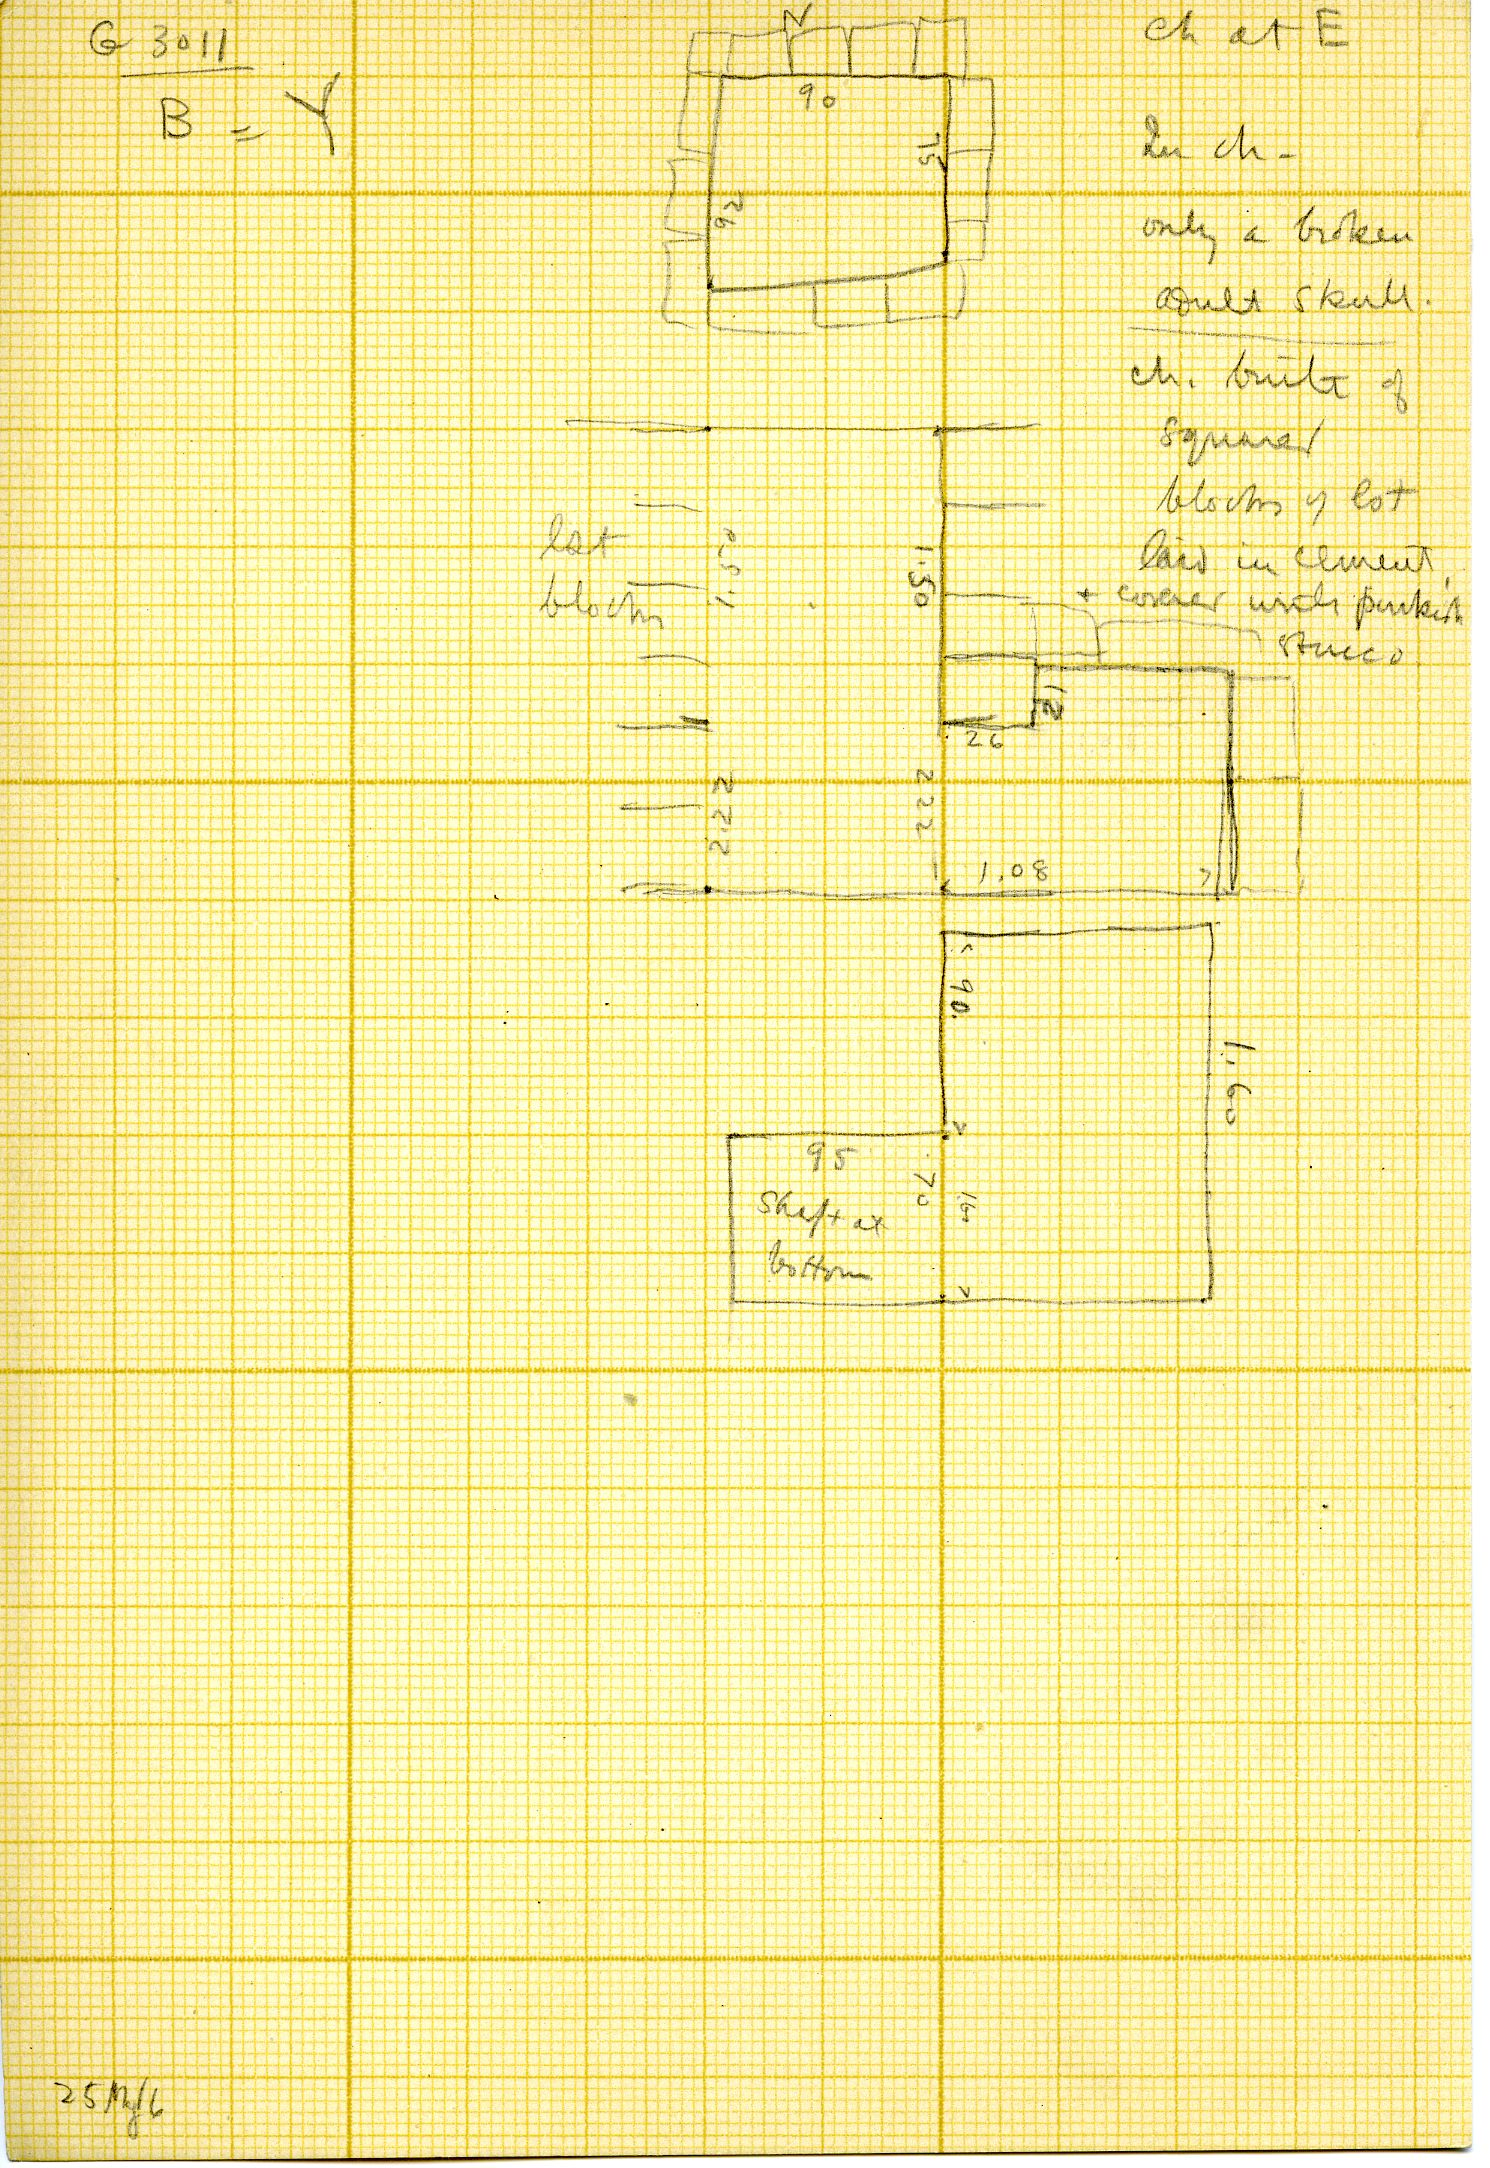 Maps and plans: G 3011, Shaft Y